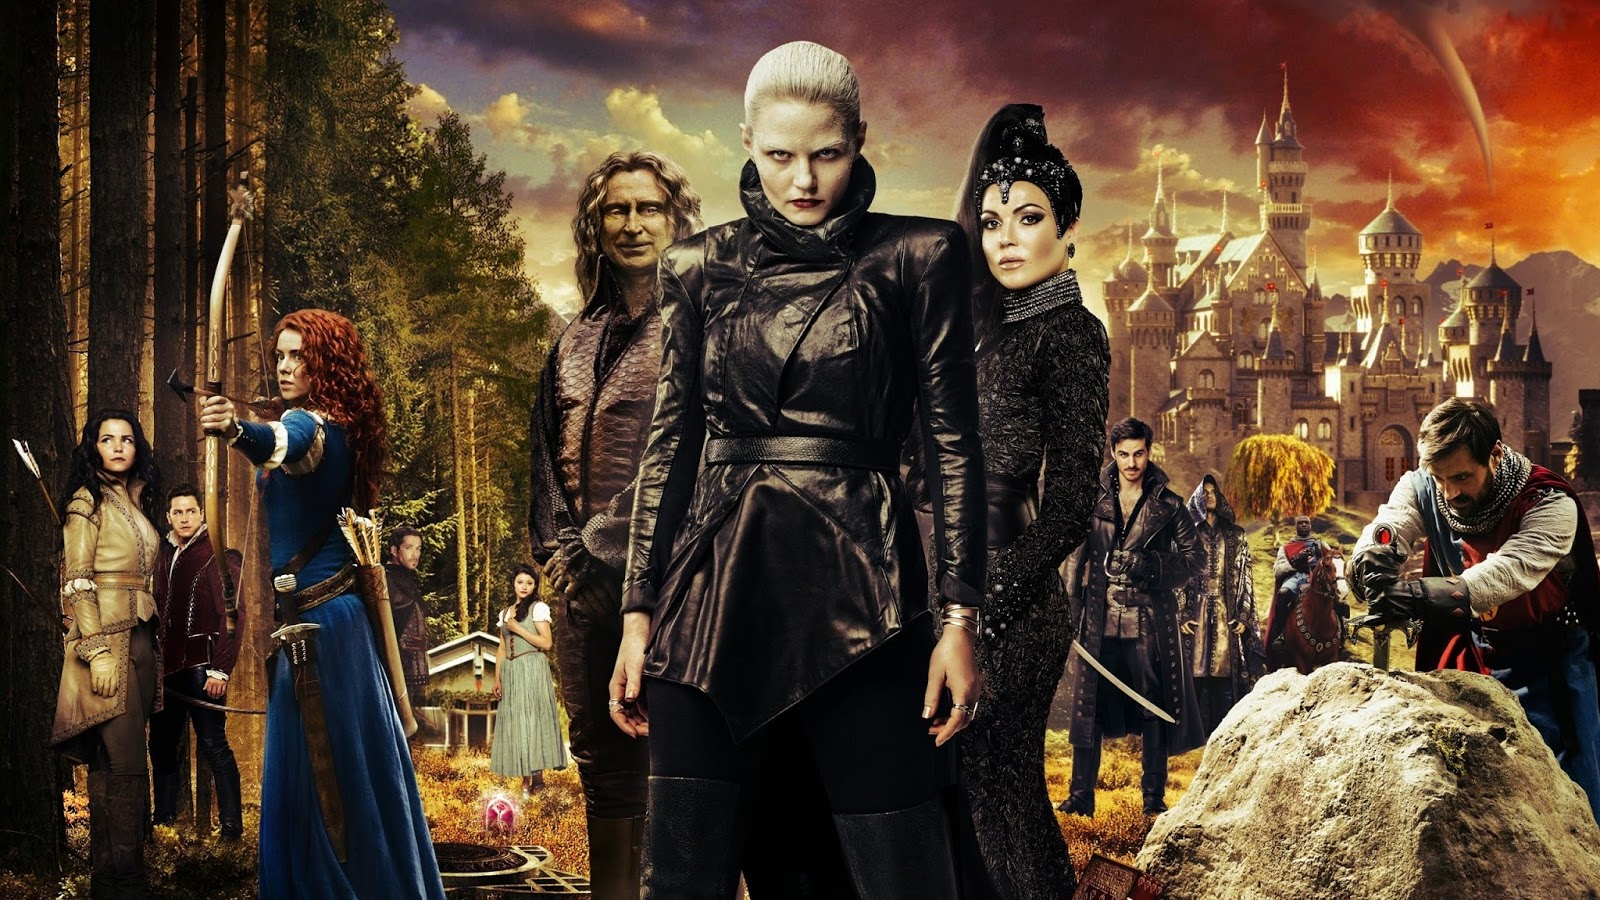 Once Upon A Time Comparando Personagens Com As Versoes Da Disney